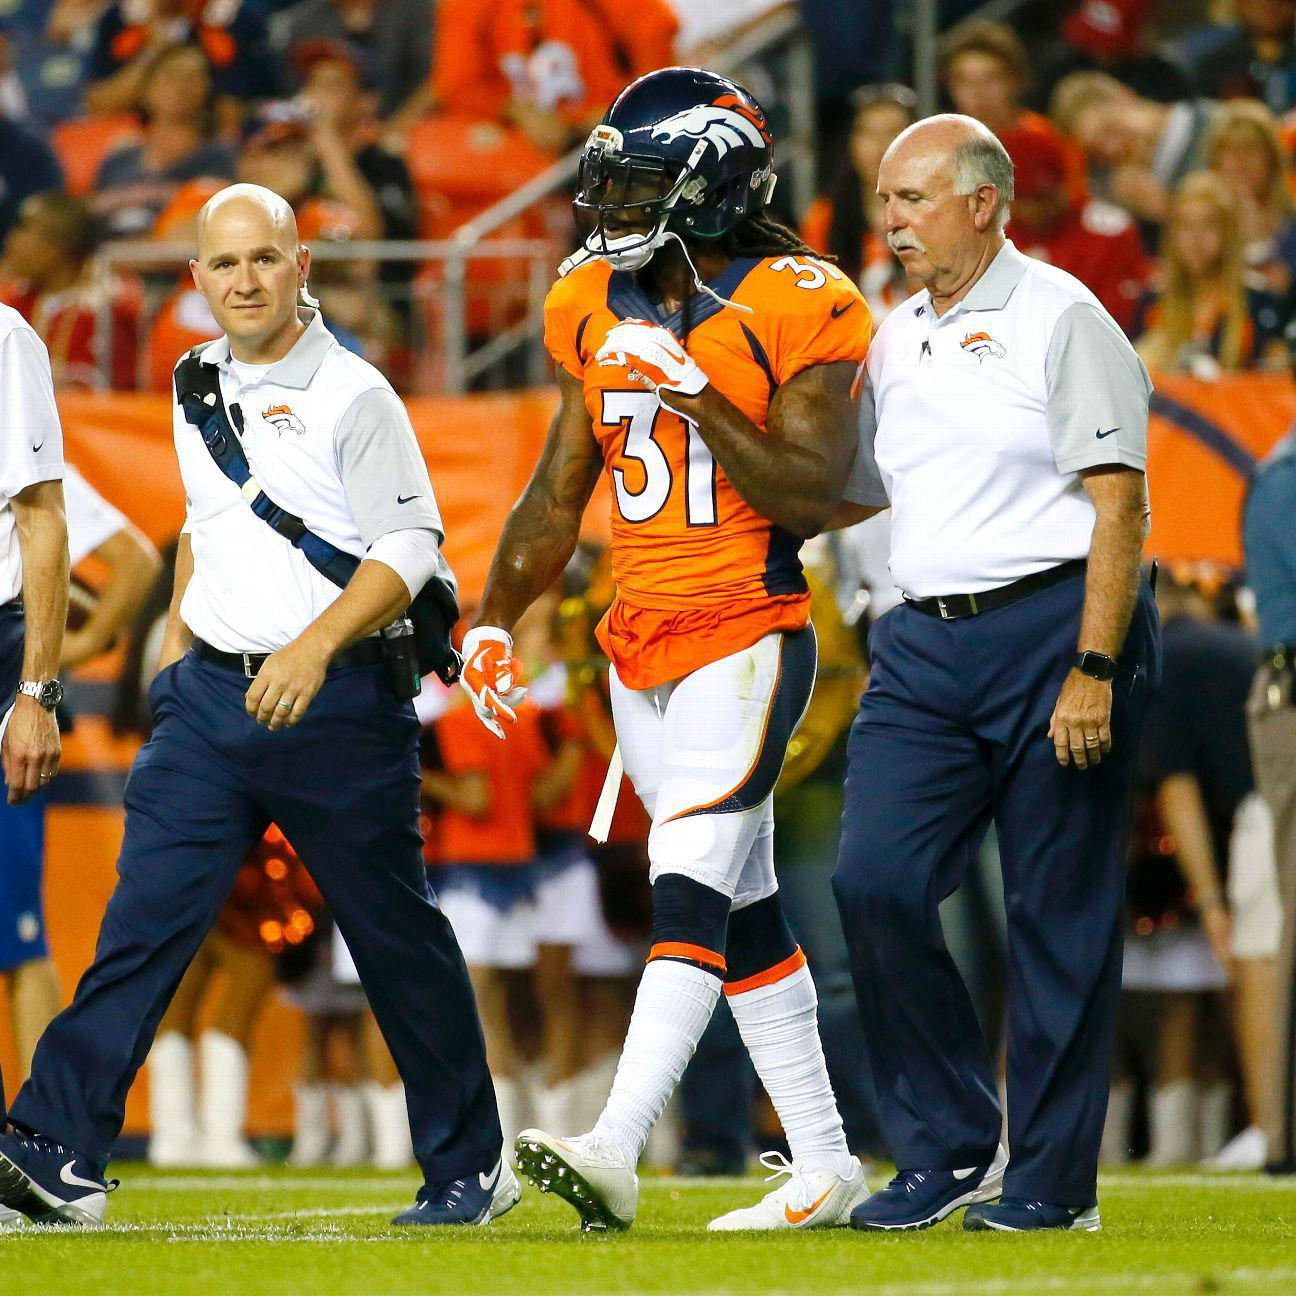 Gary Kubiak Asked For Clarification On Hit That Injured